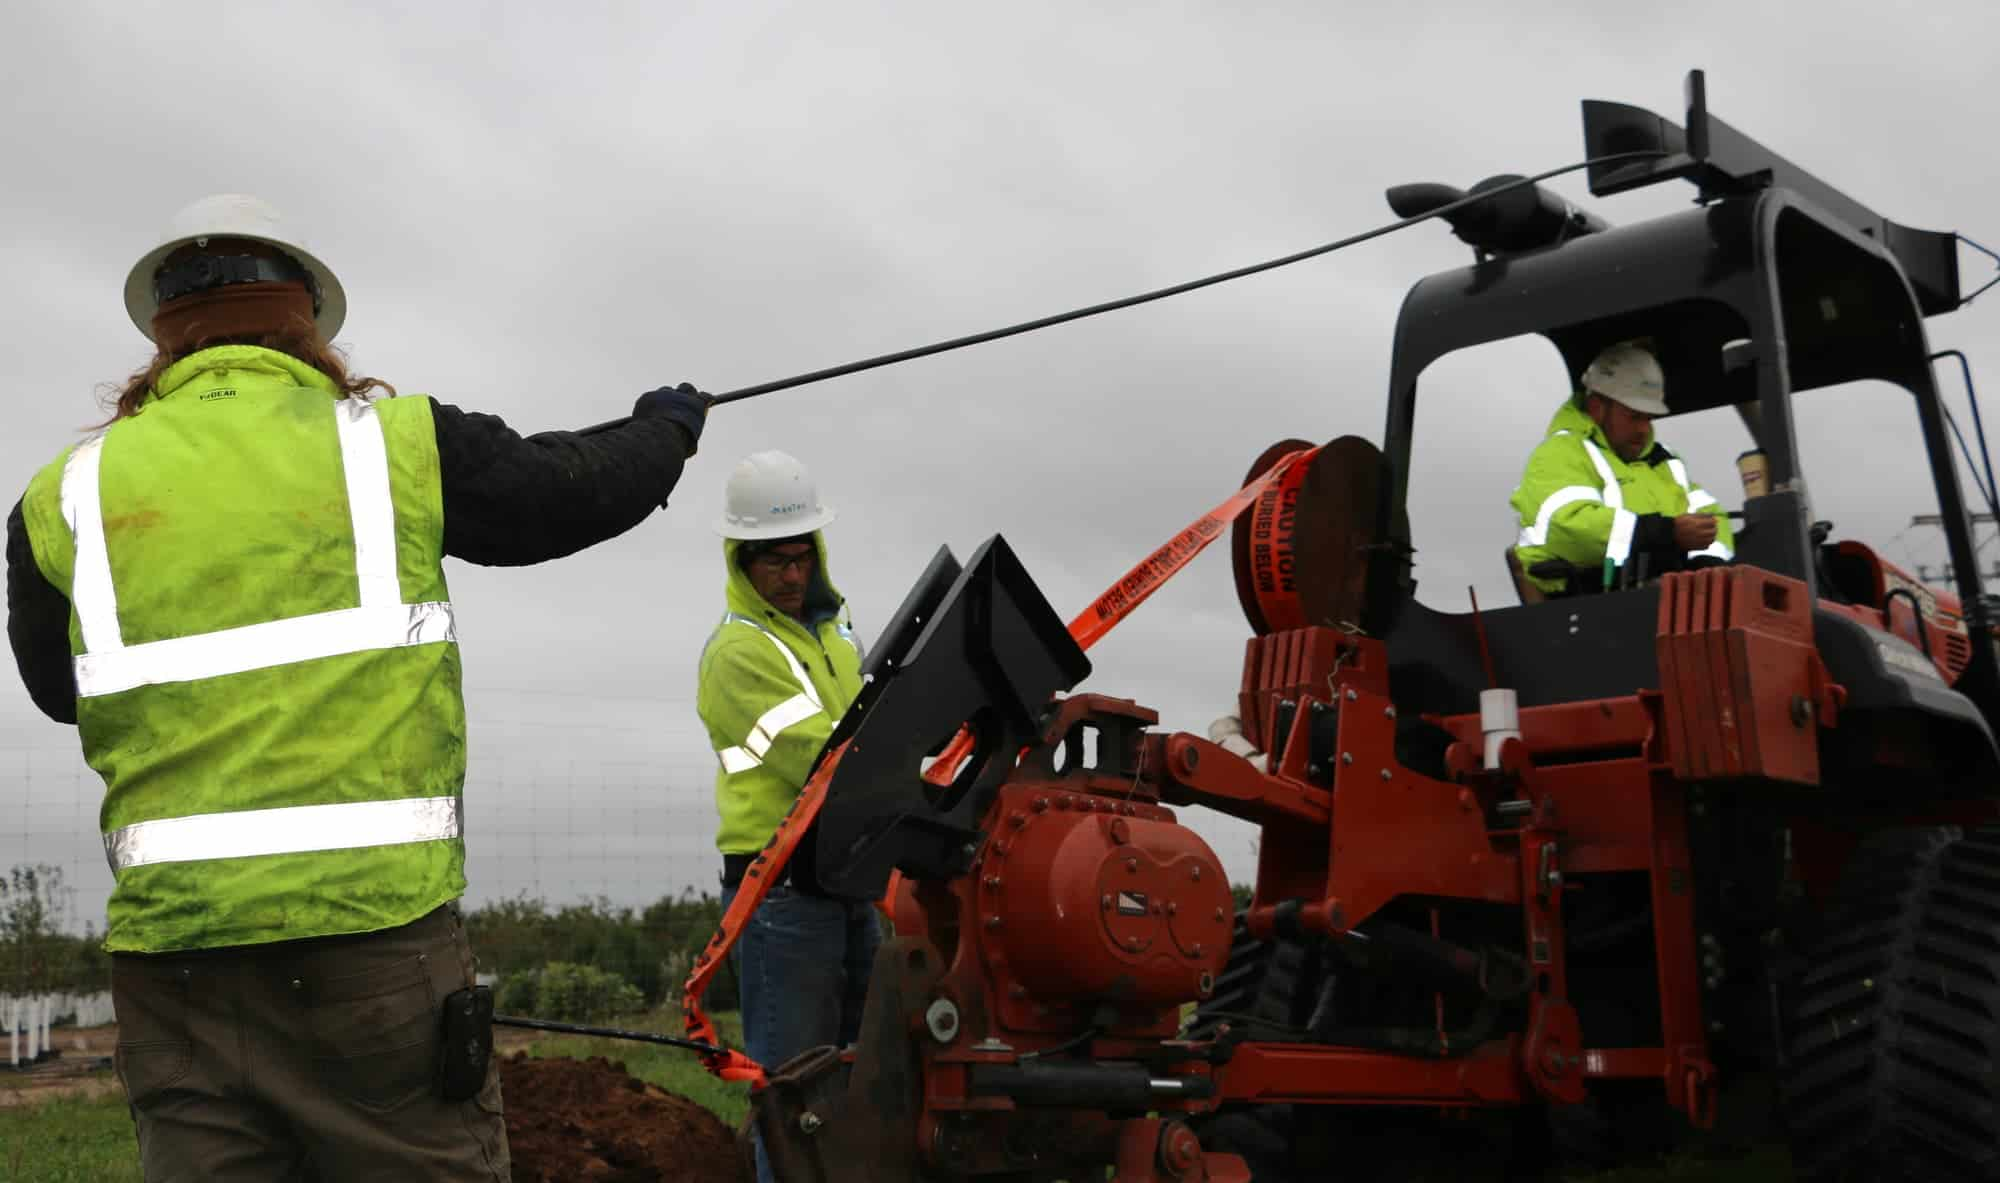 Hiawatha Broadband employees installed fiber optic cable near Hastings in an effort to bring high-speed internet connectivity to more rural areas in Dakota County.